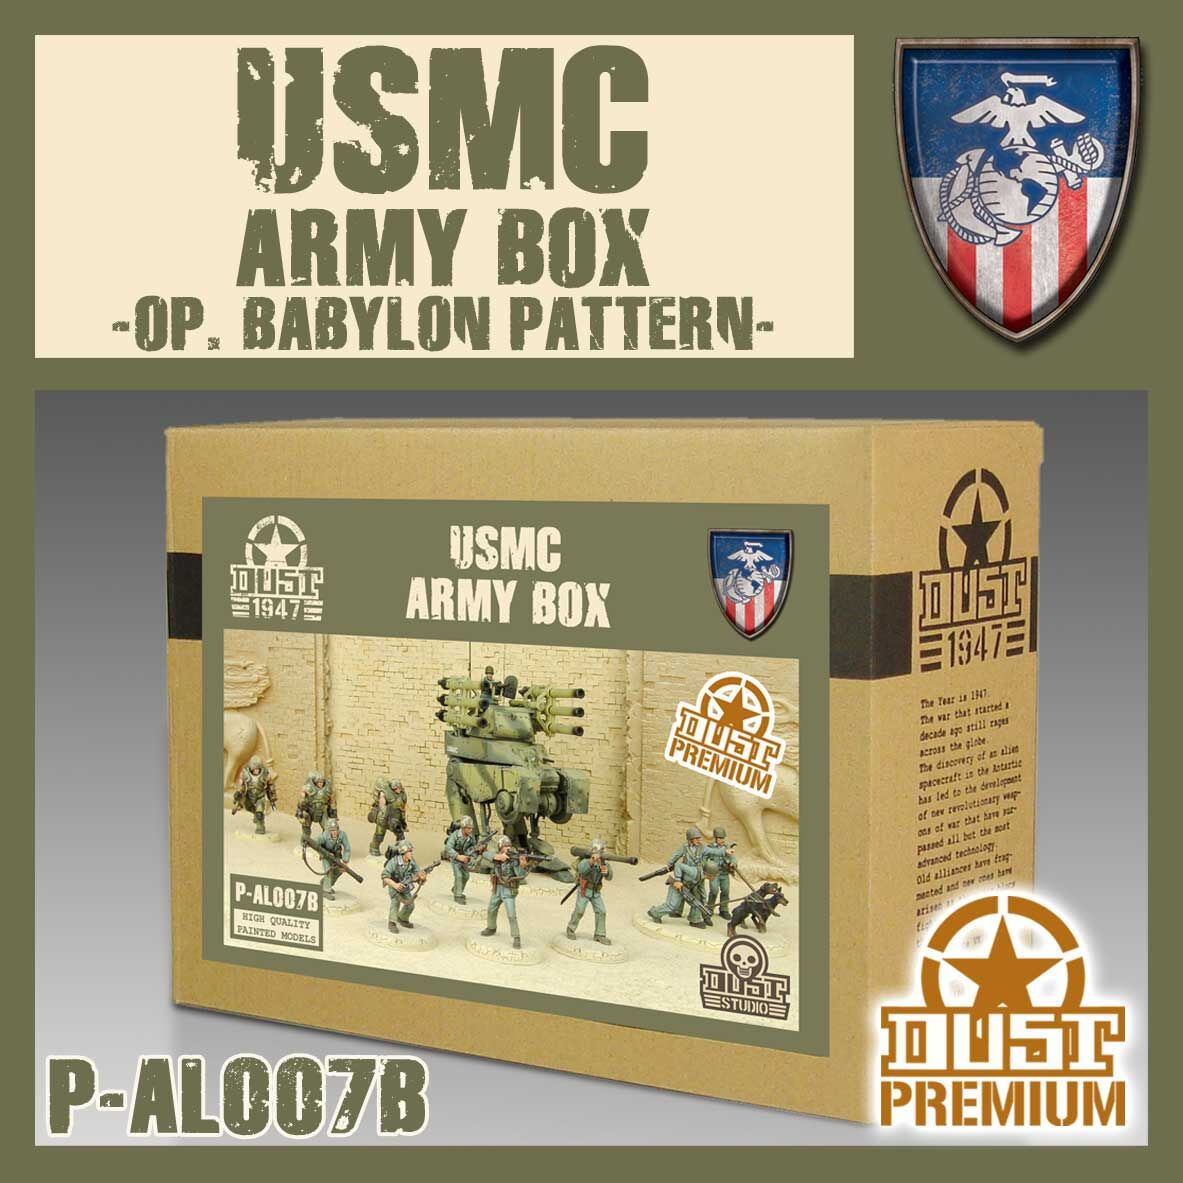 USMC Army Box – Babylon Pattern